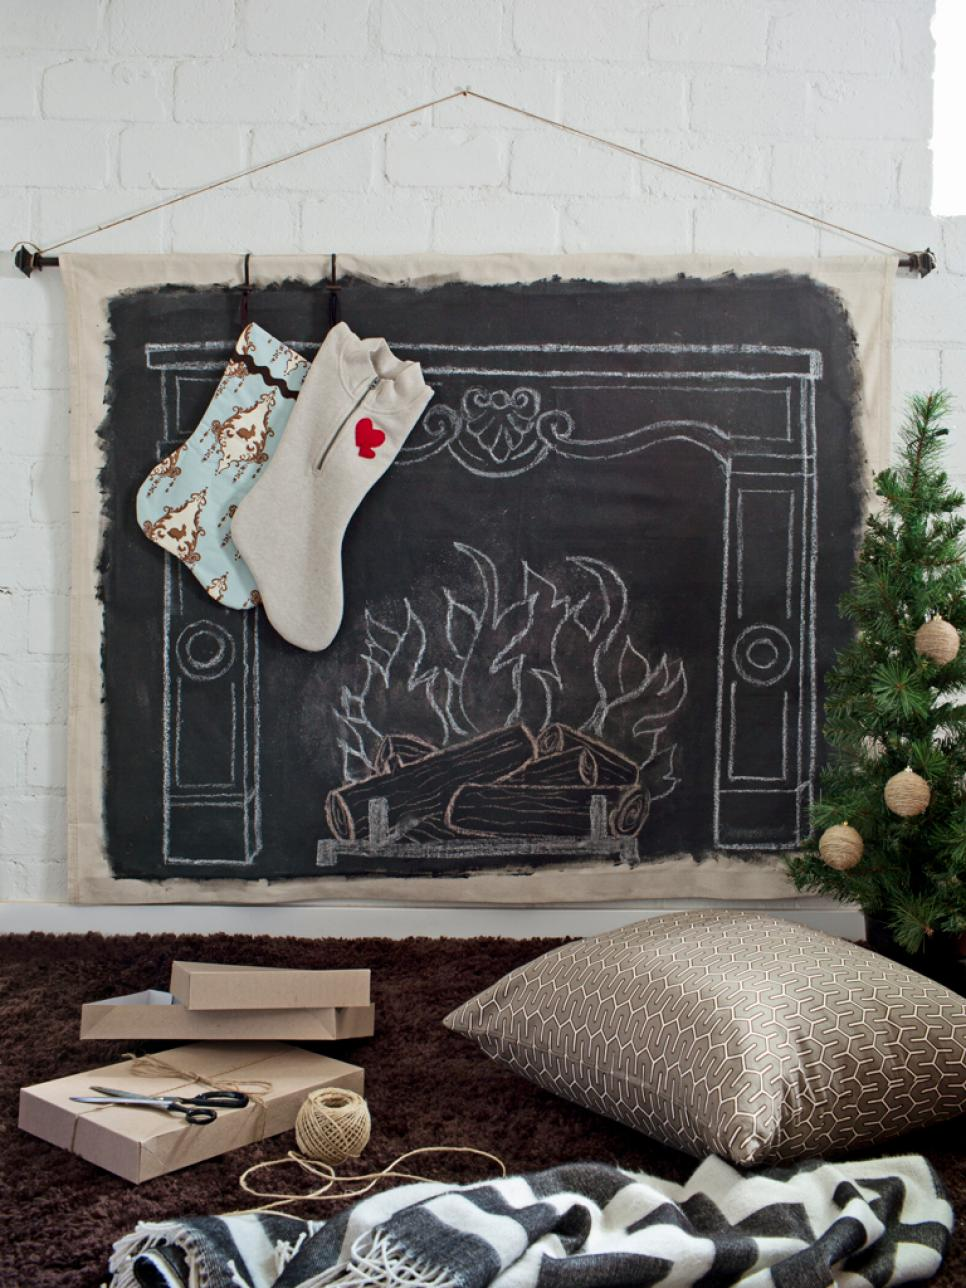 Put a foux fireplace in the living room for Santa to visit